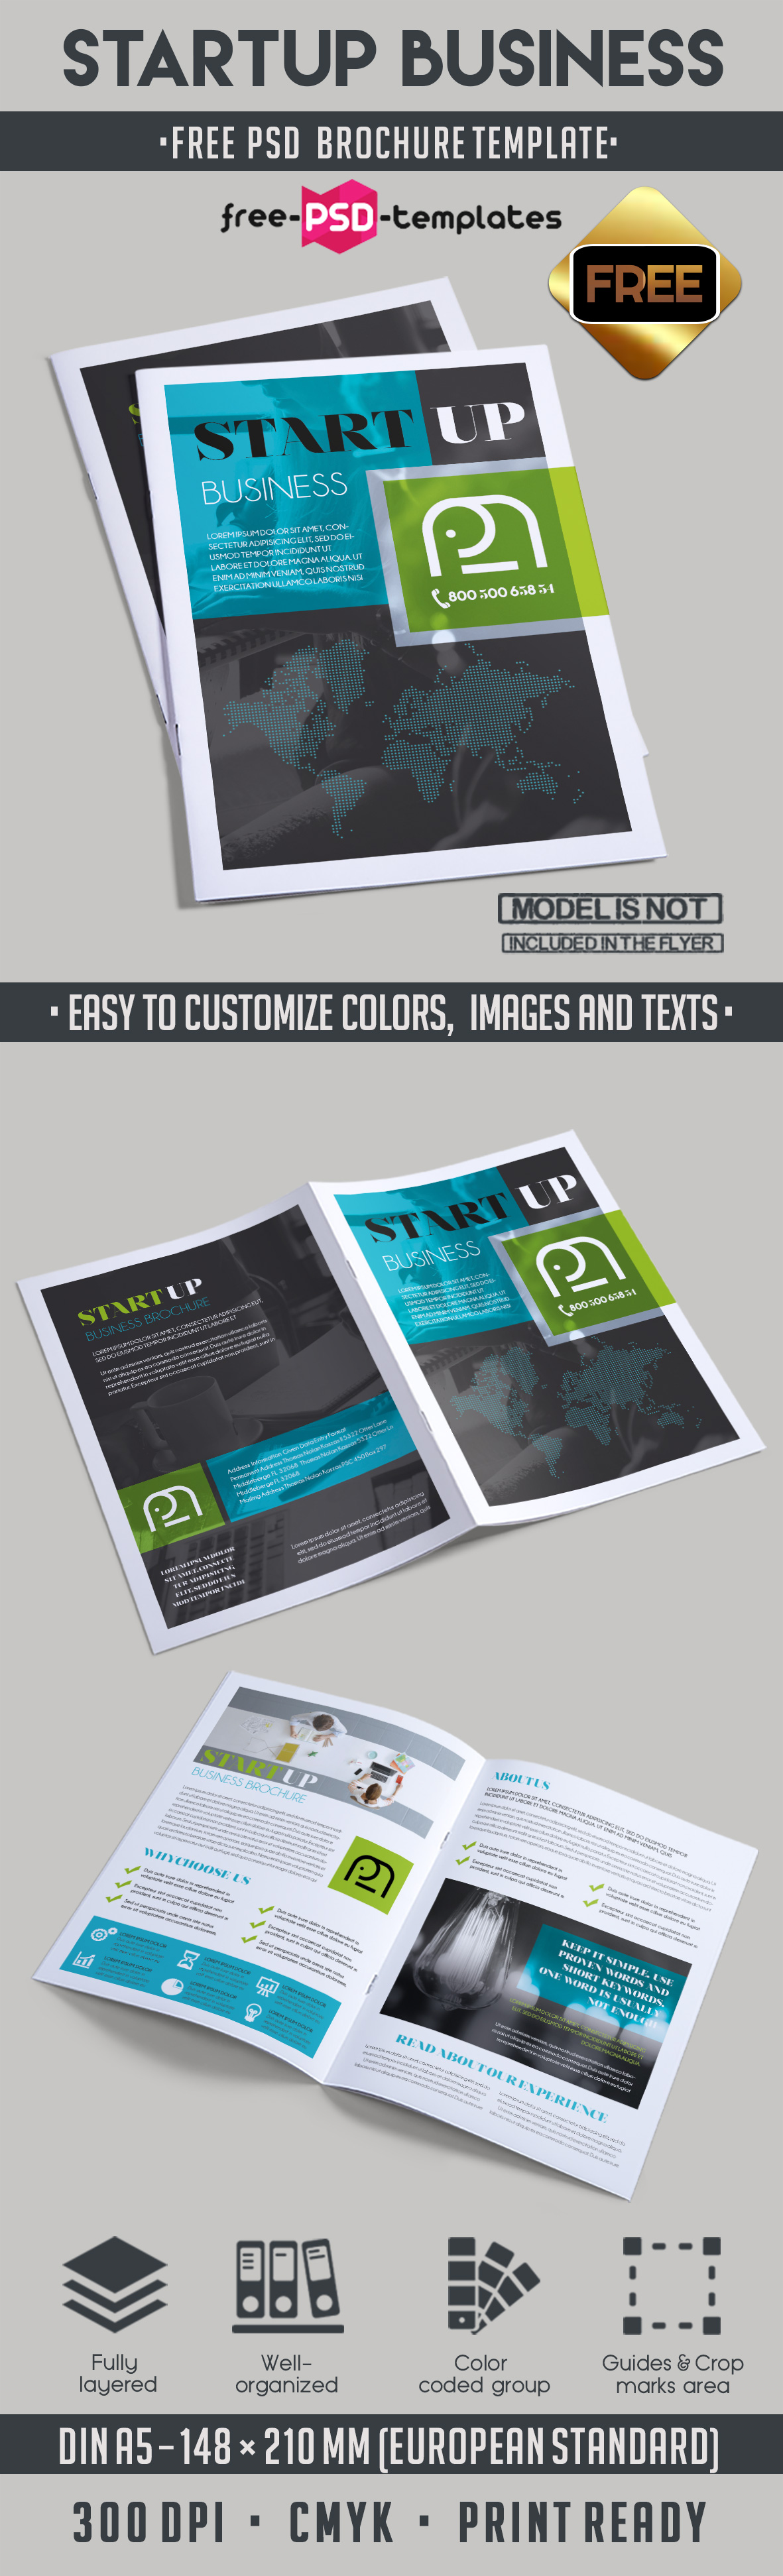 free brochure templates psd download - free startup business bi fold psd brochure template free